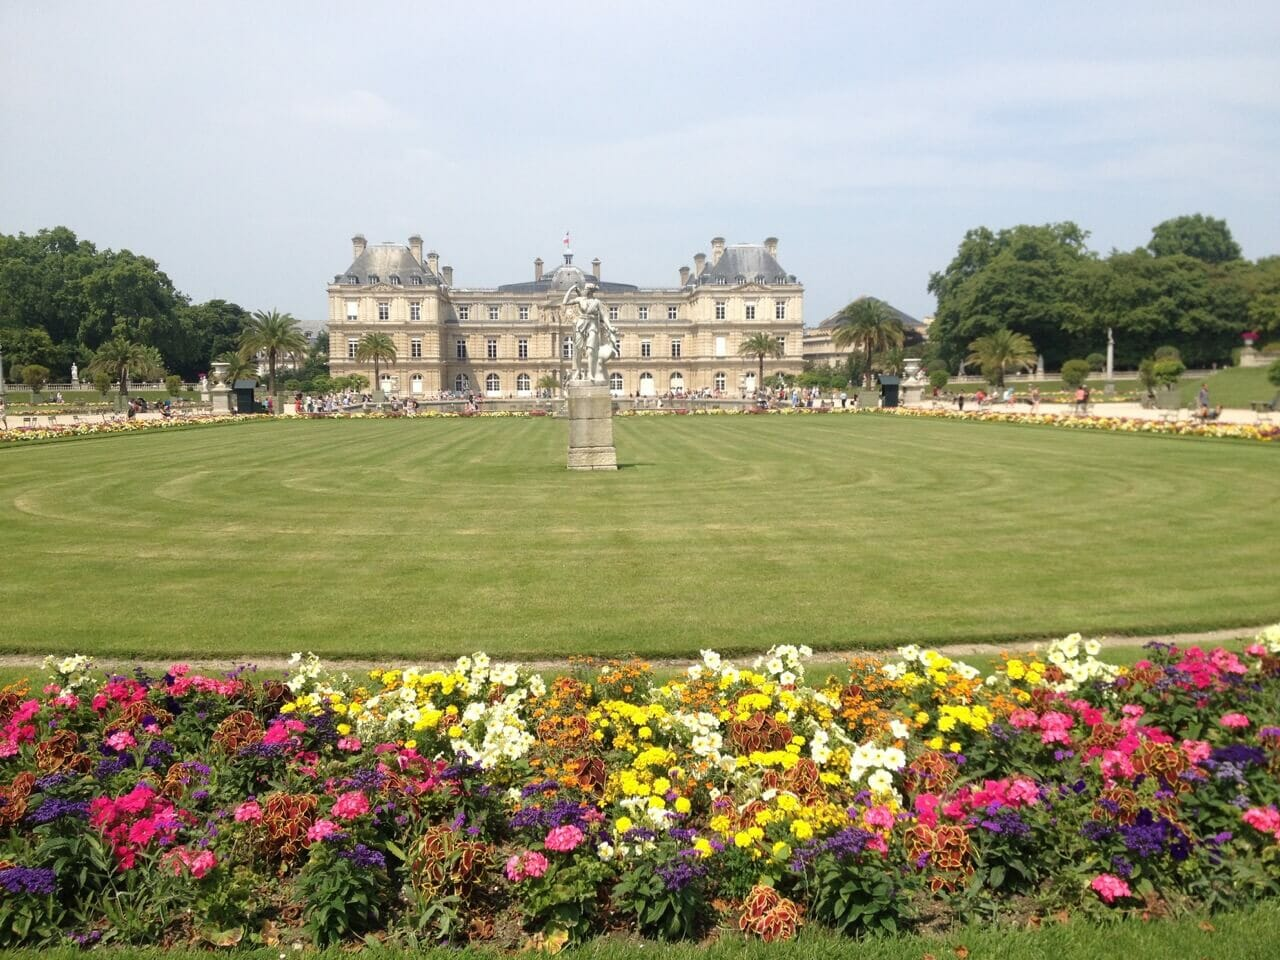 Jardim du Luxembourg during the summer.